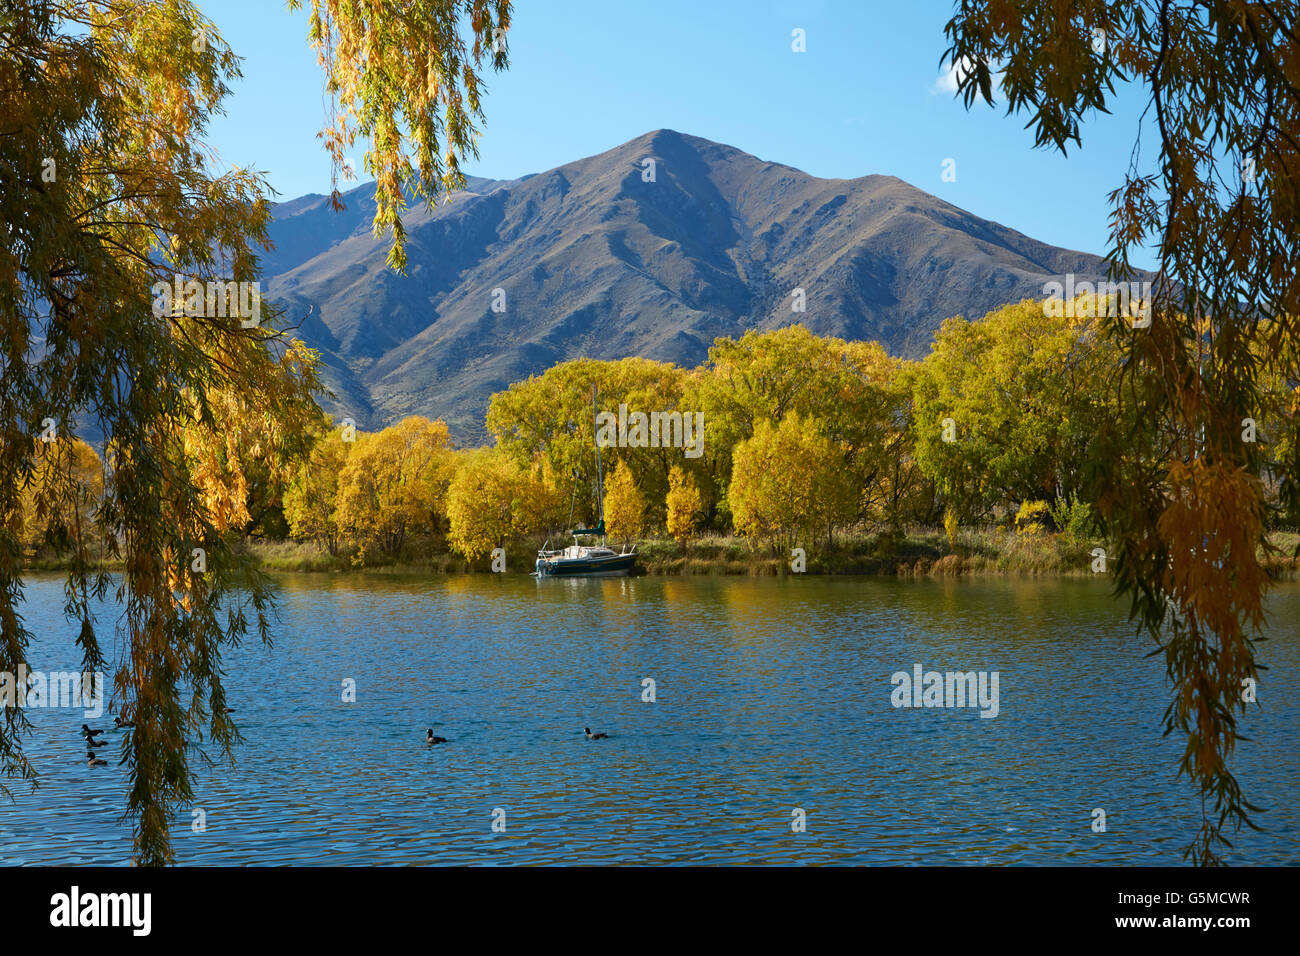 Autumn, Sailors Cutting, Lake Benmore, and Benmore Range, Waitaki Valley, North Otago, South Island, New Zealand - Stock Image